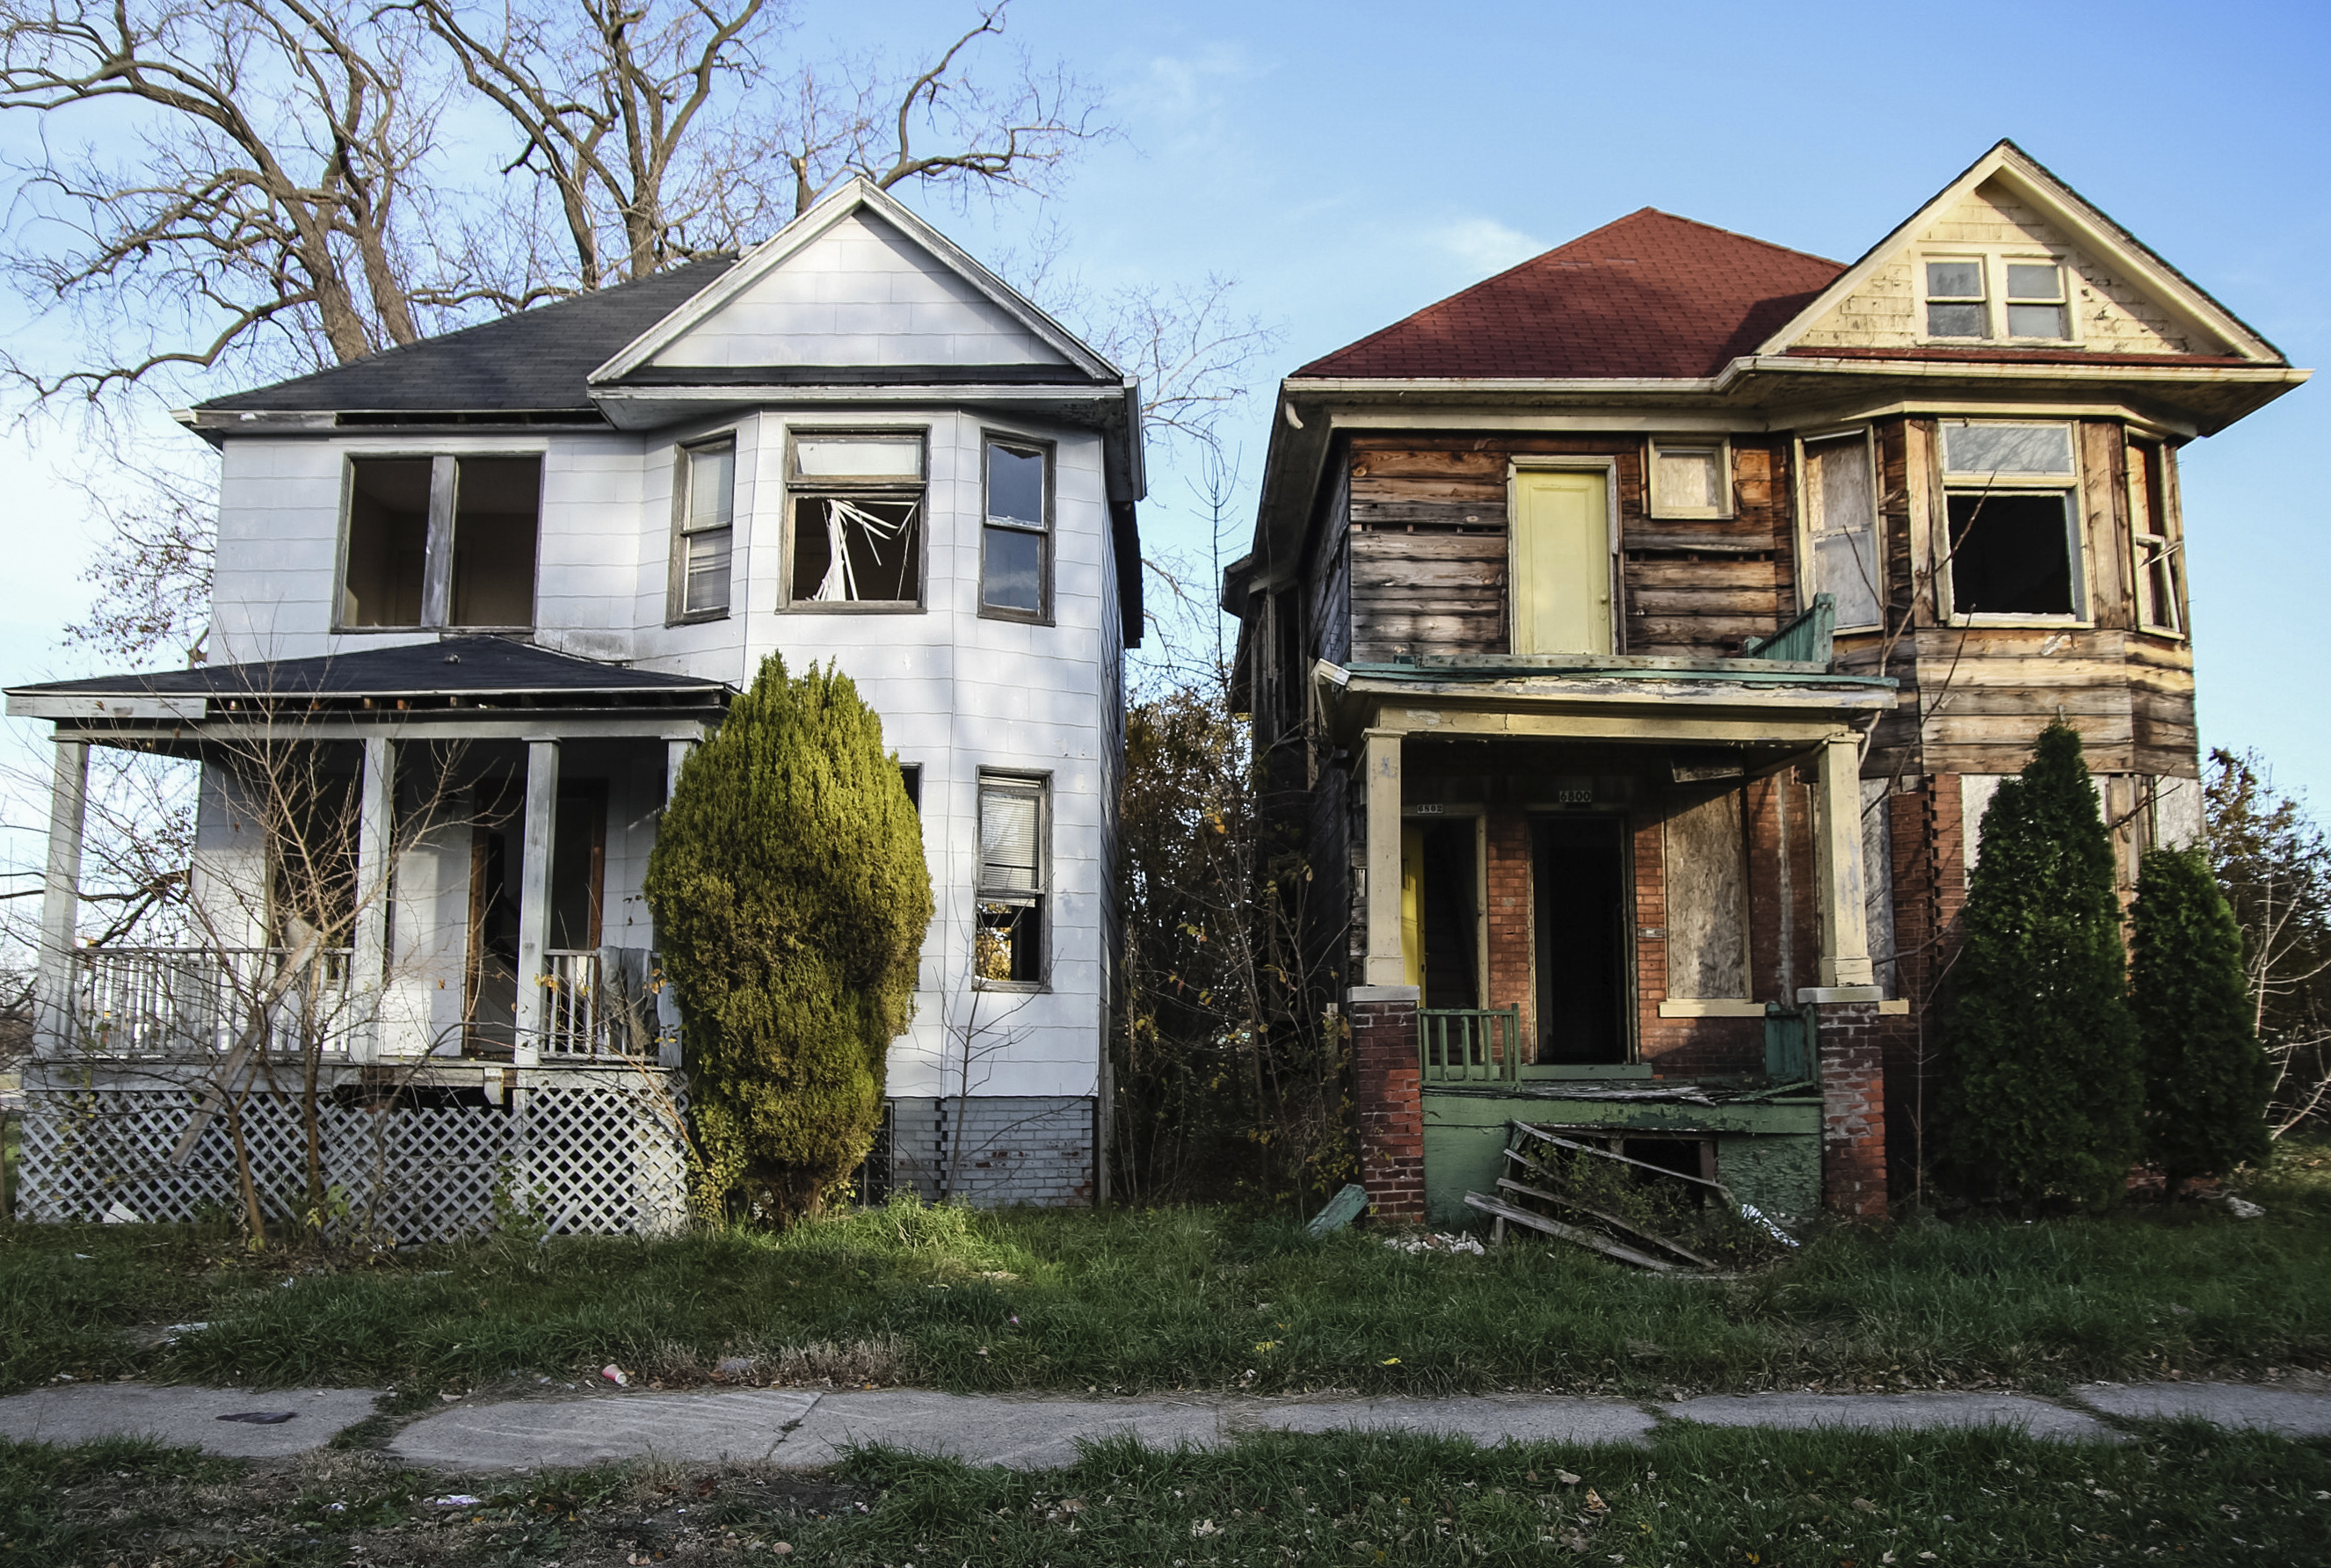 Abandoned houses in Detroit. (stock image)